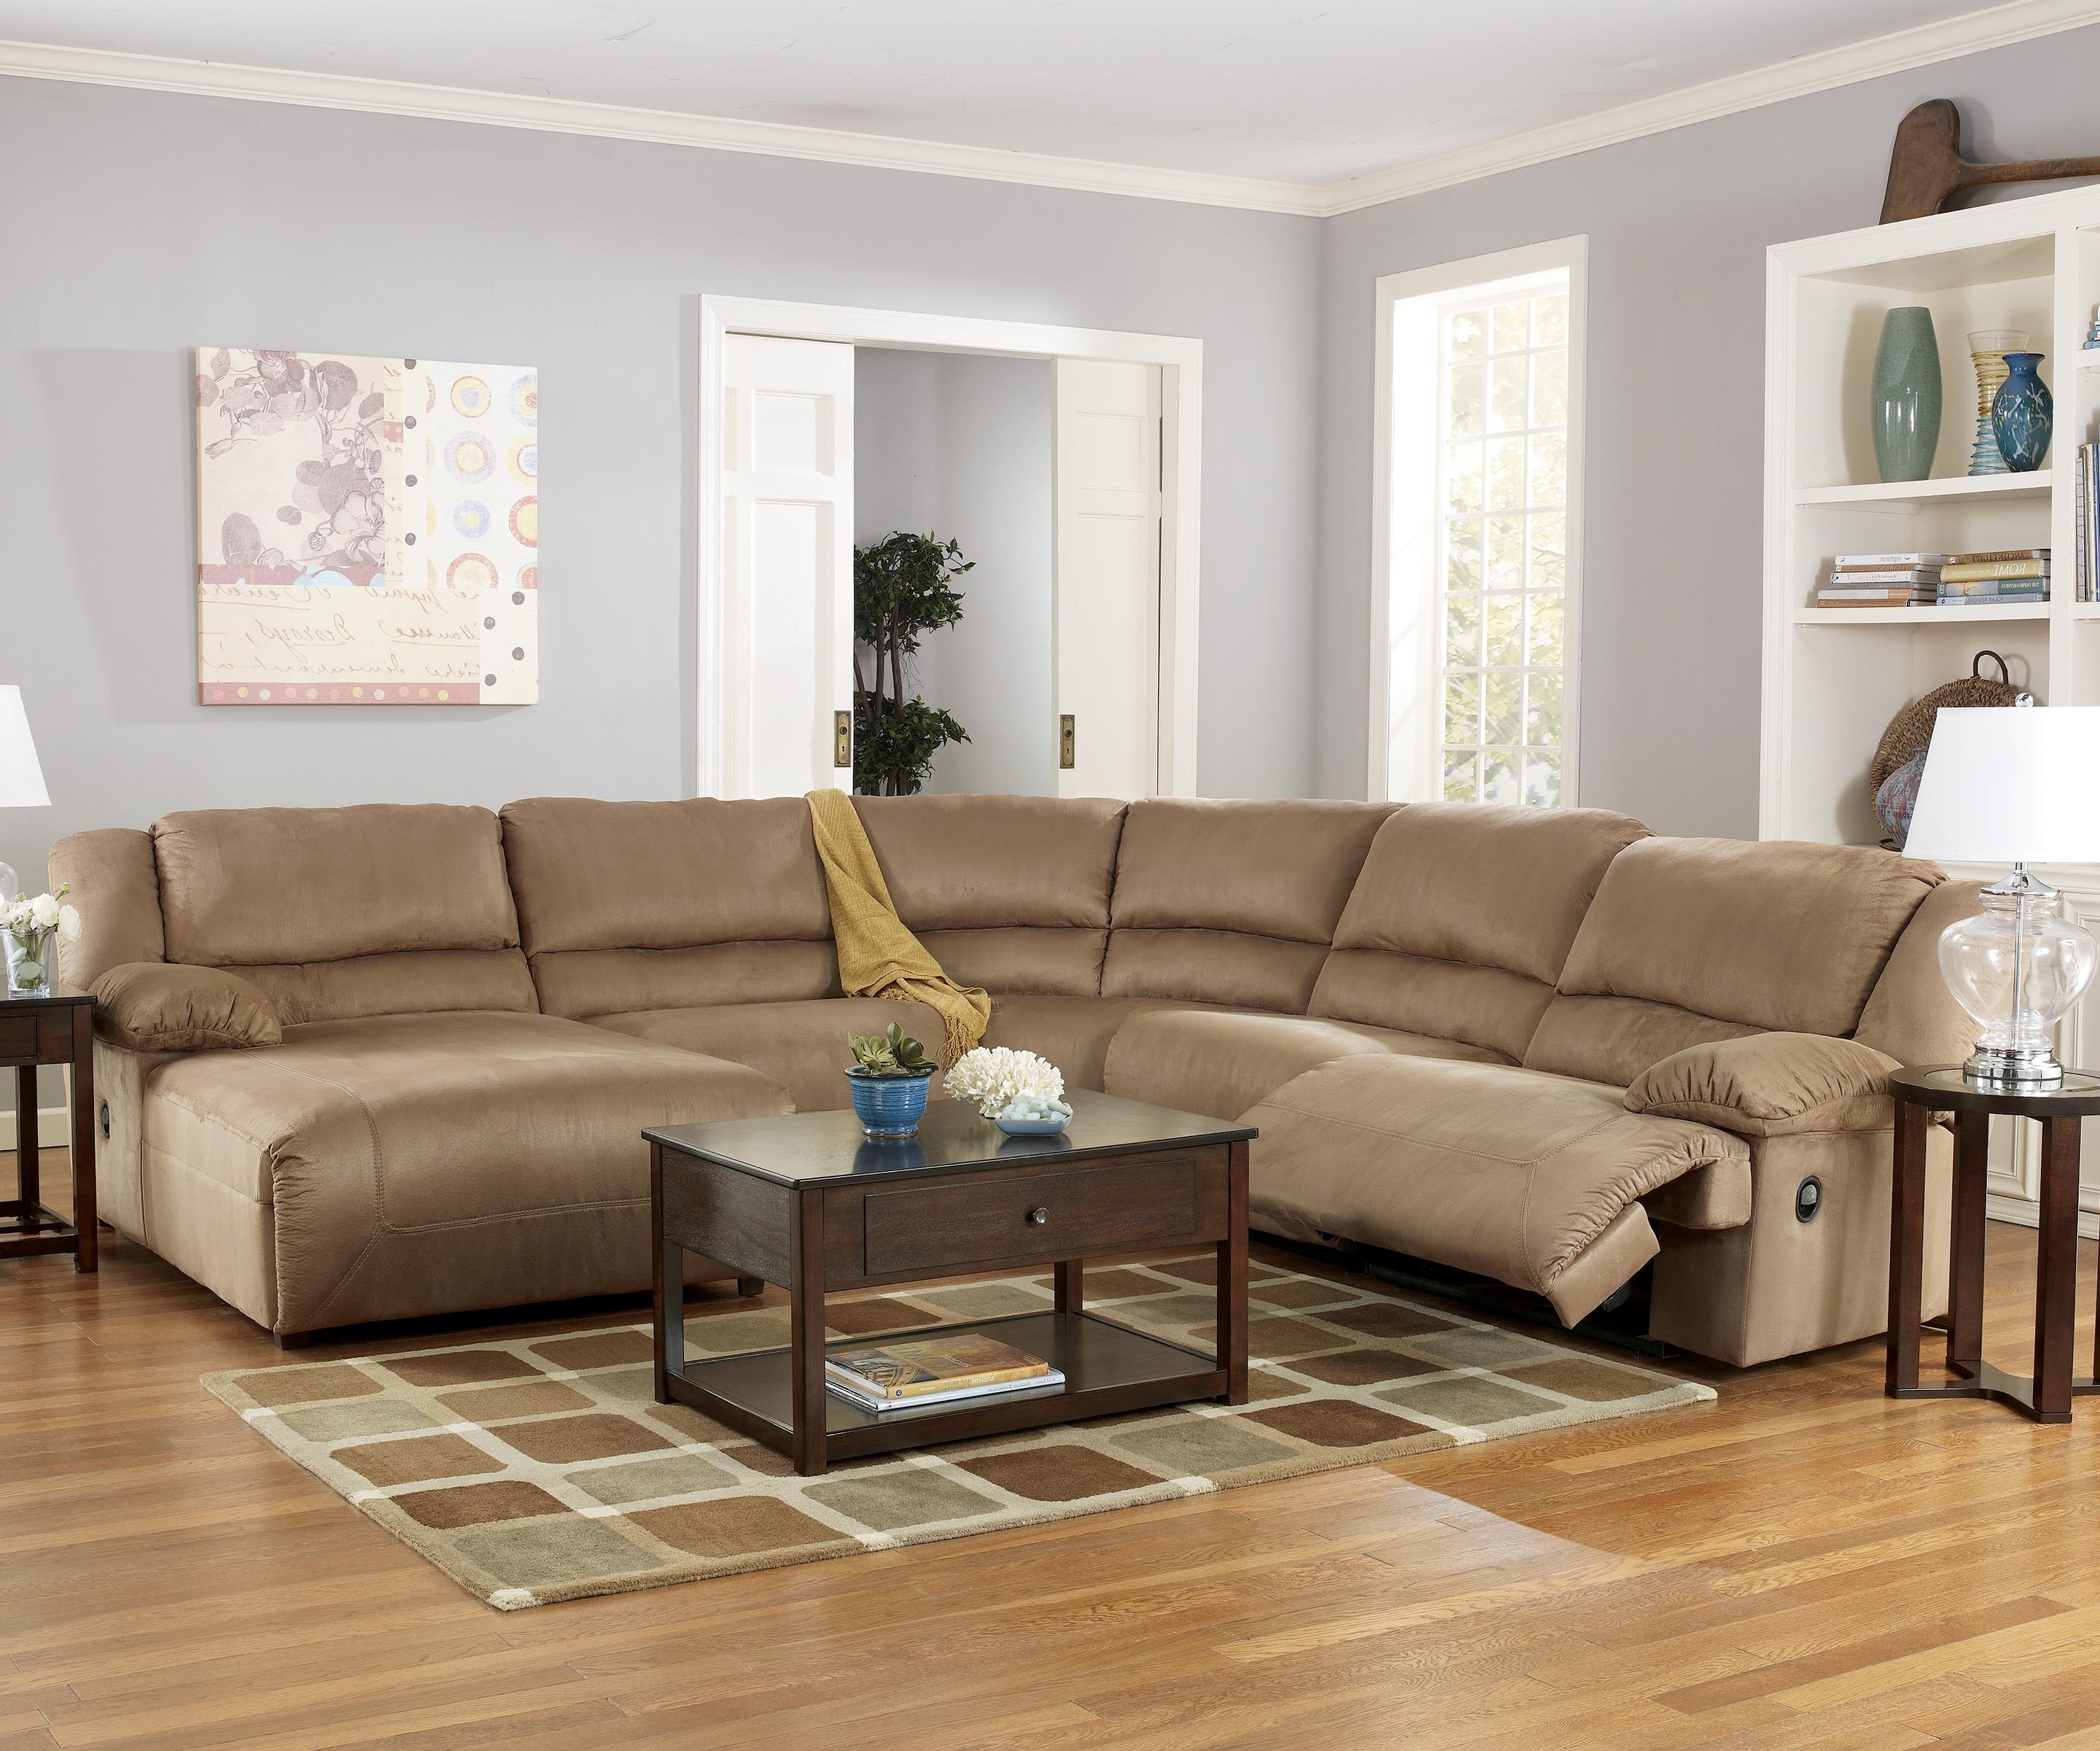 Sectional Sofas Under 300 With Regard To Best And Newest Orlando Sectional Sofas (View 13 of 15)